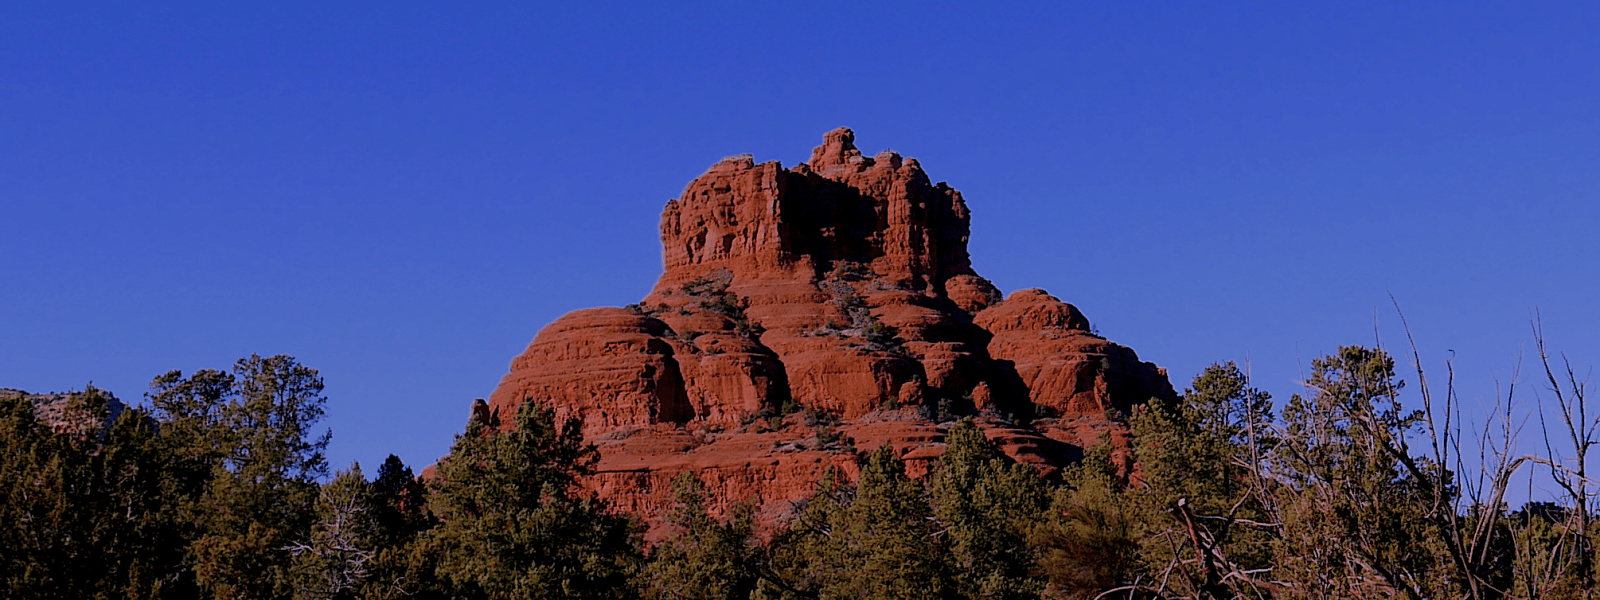 Finding Vortices in Sedona